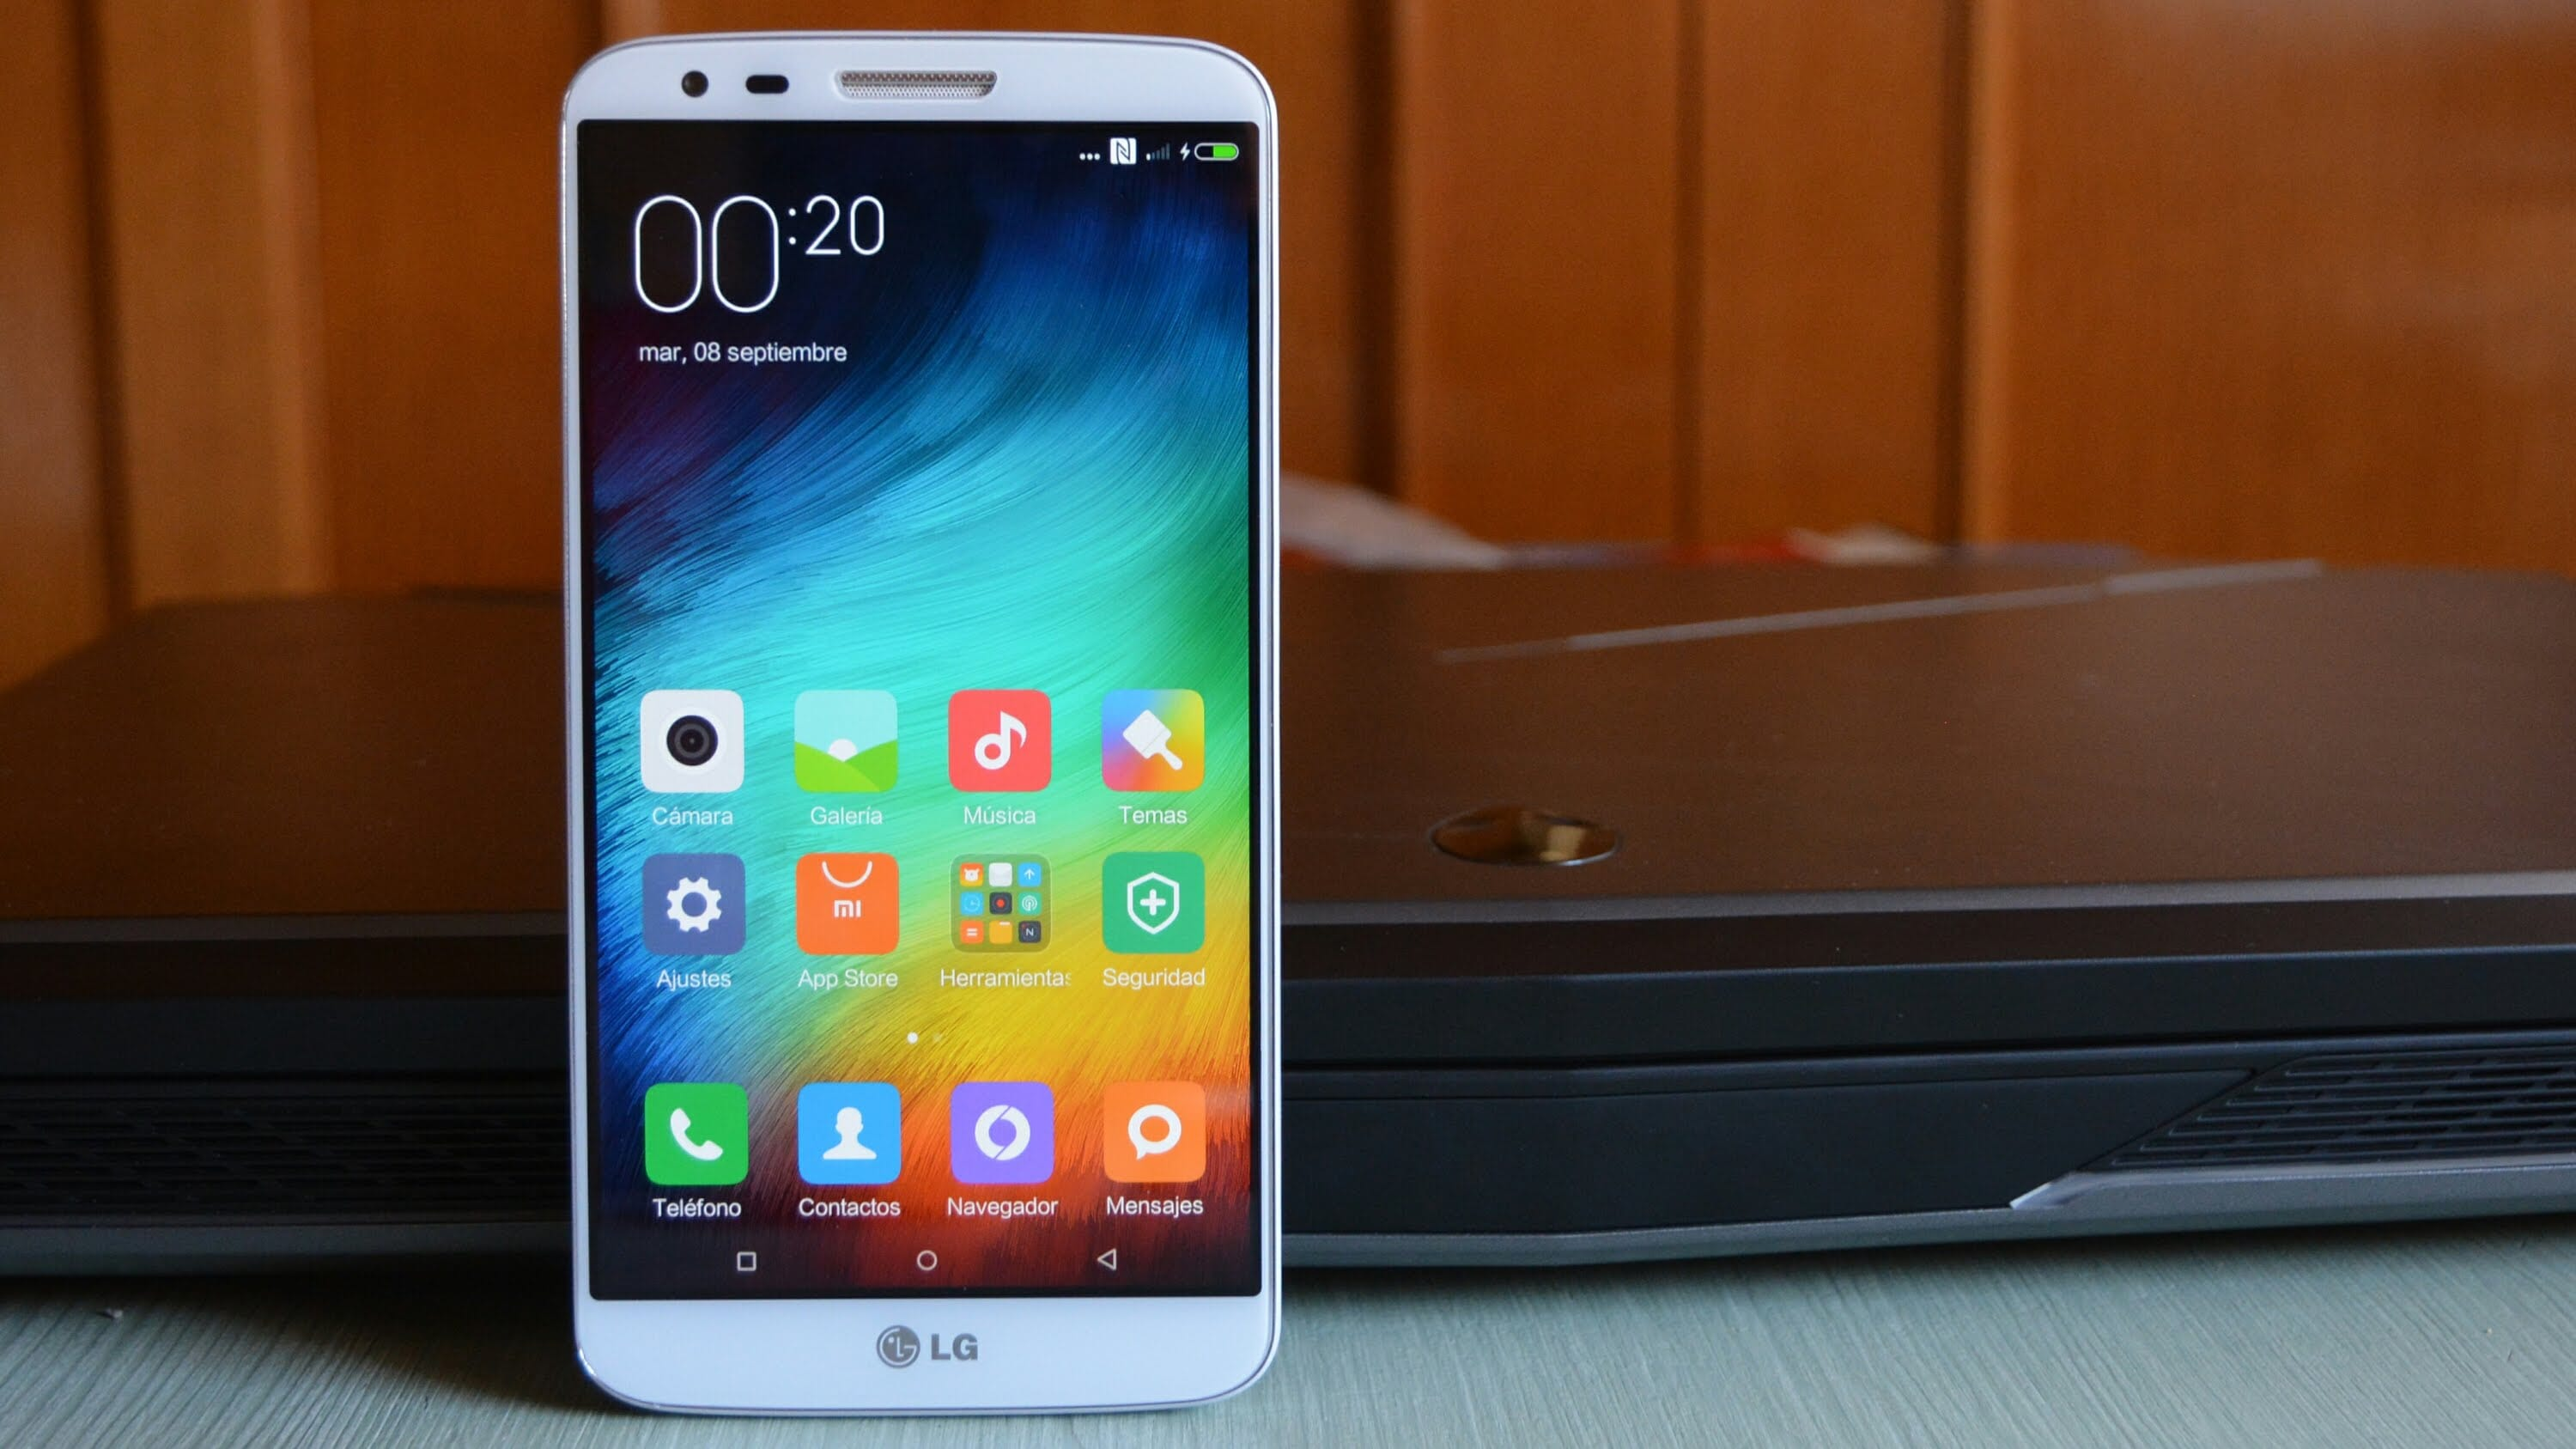 [Guide] Install MIUI 7 on LG G2